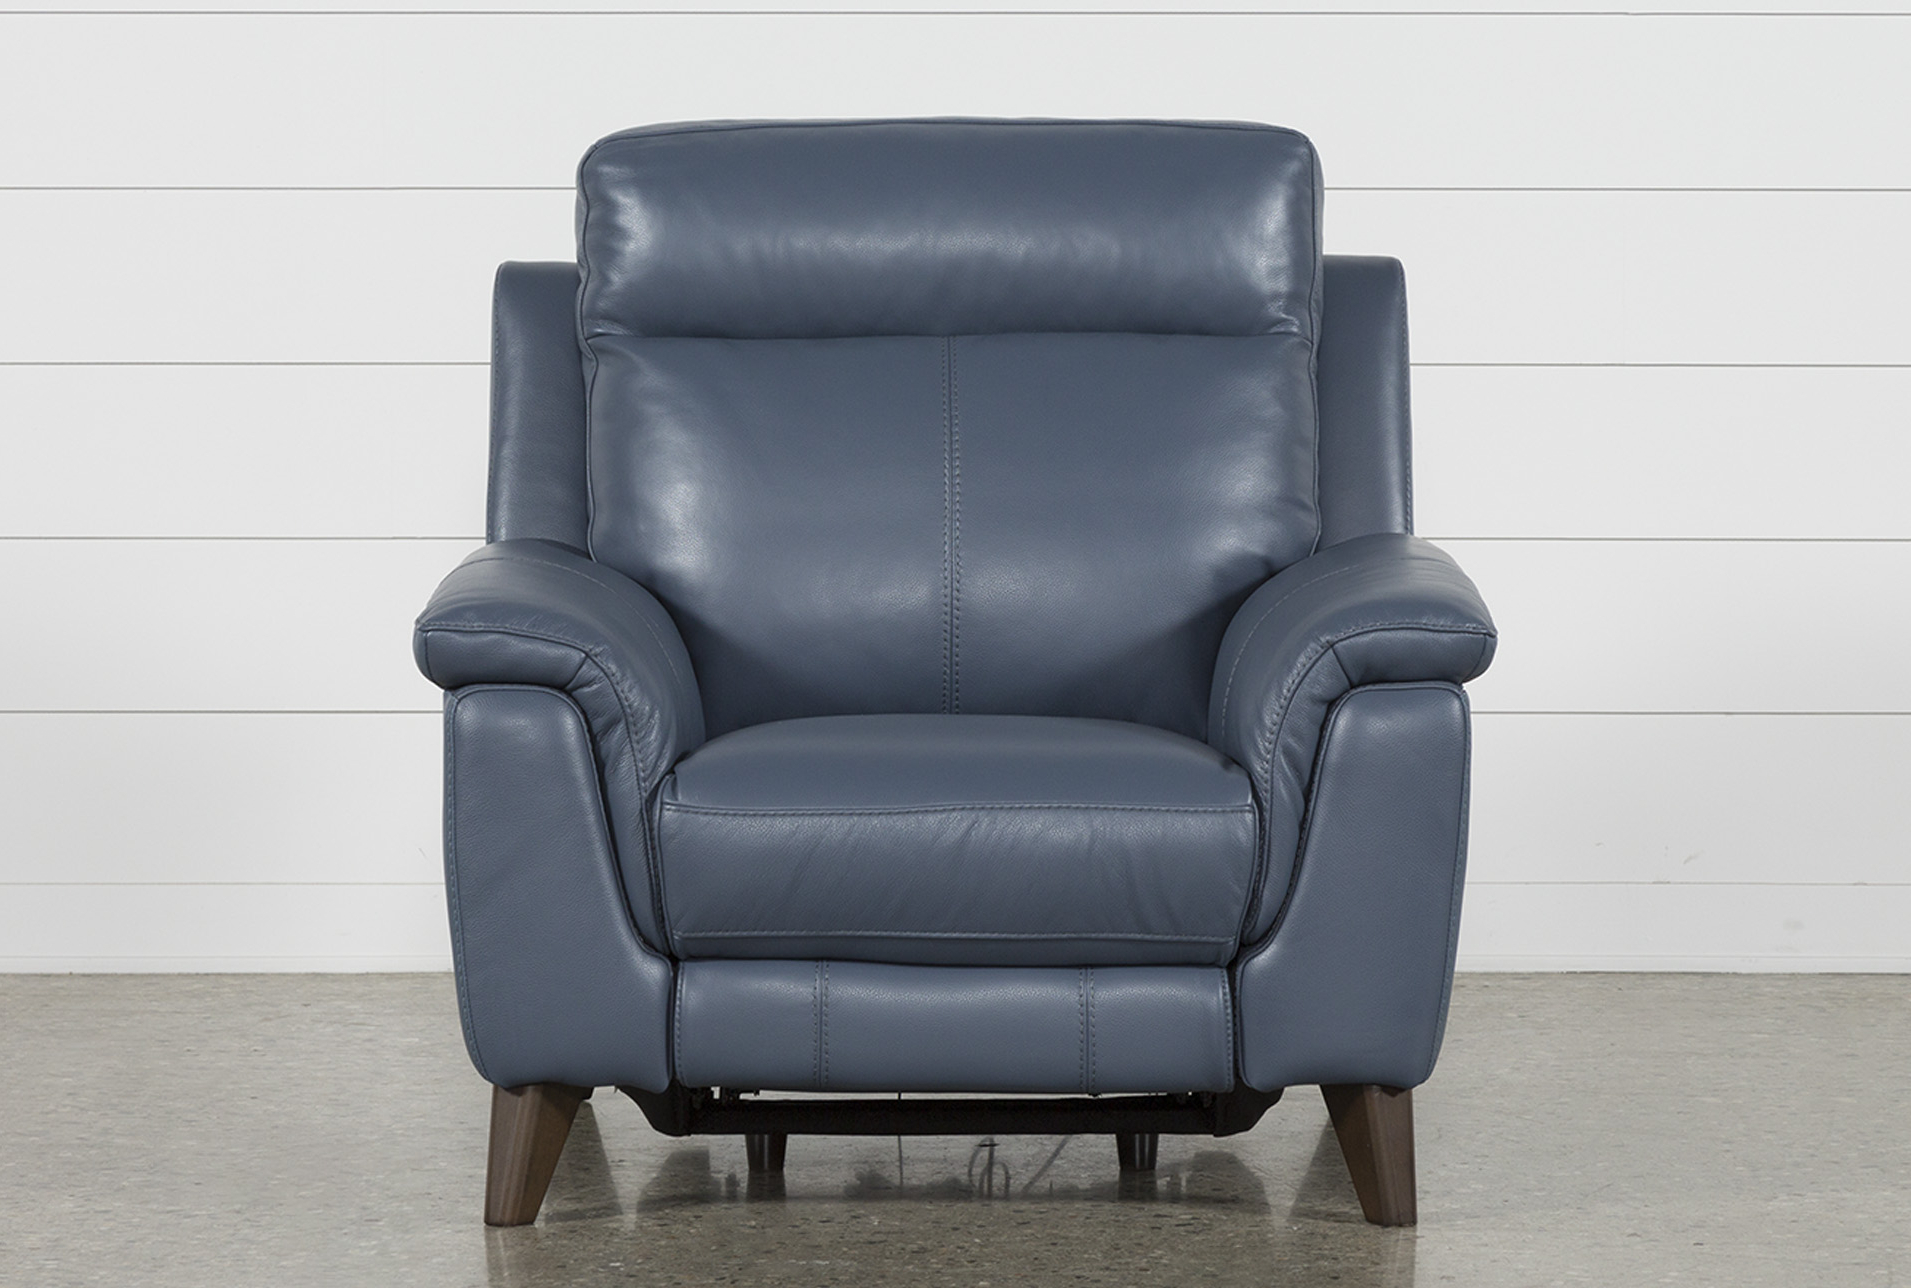 Products With Regard To Moana Blue Leather Power Reclining Sofa Chairs With Usb (View 2 of 20)